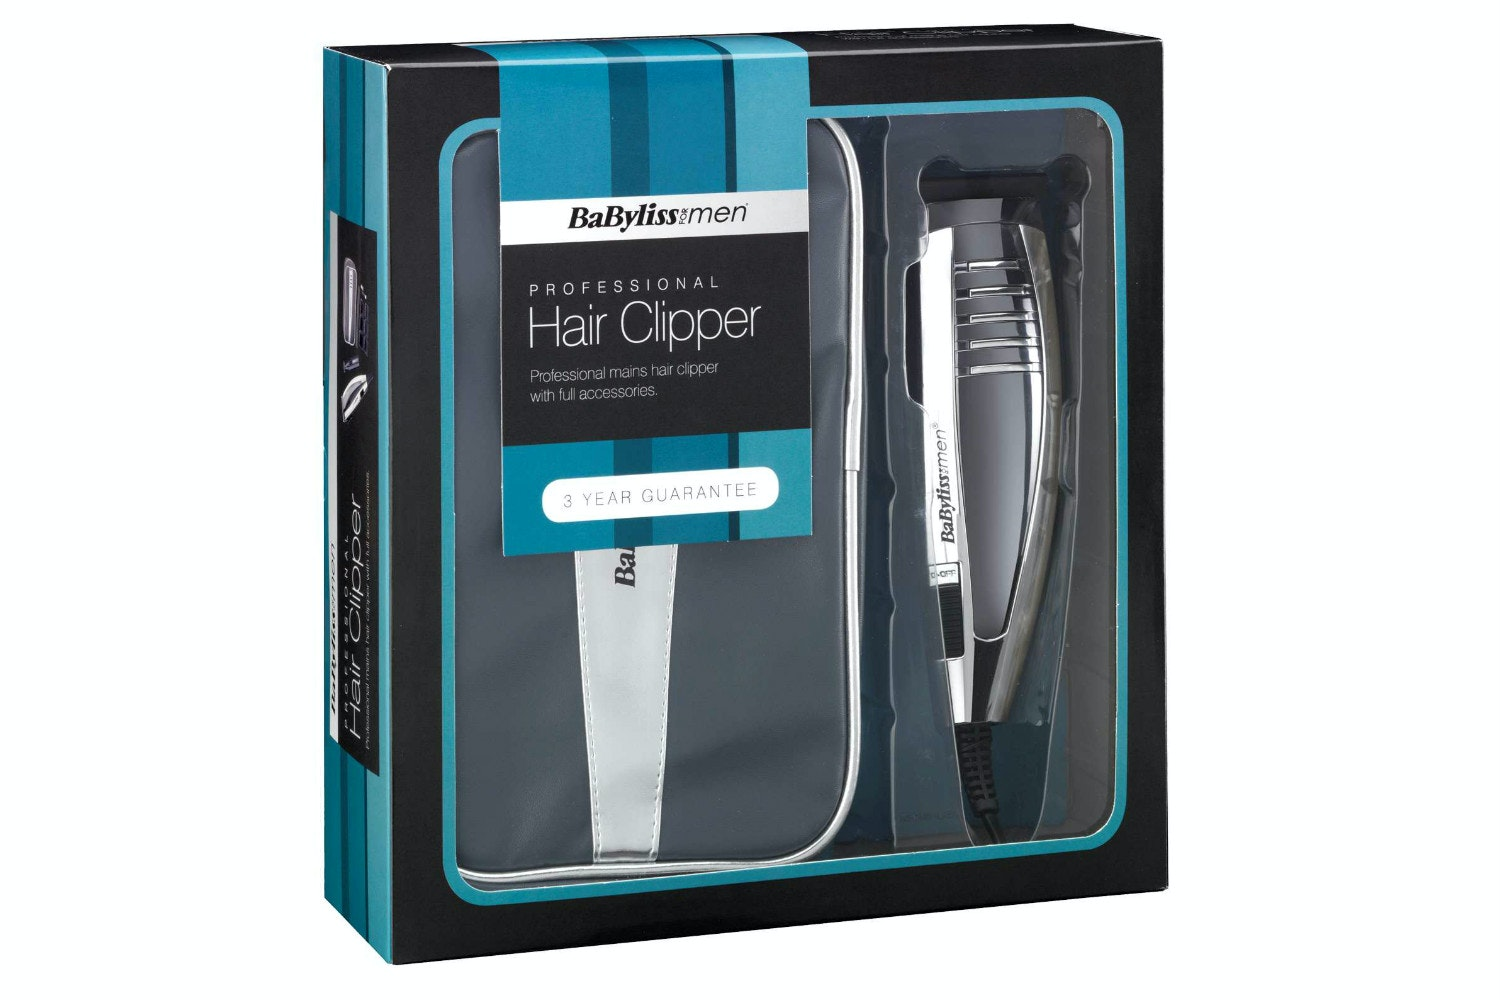 BaByliss Professional Hair Clipper Gift Set 7448BGU